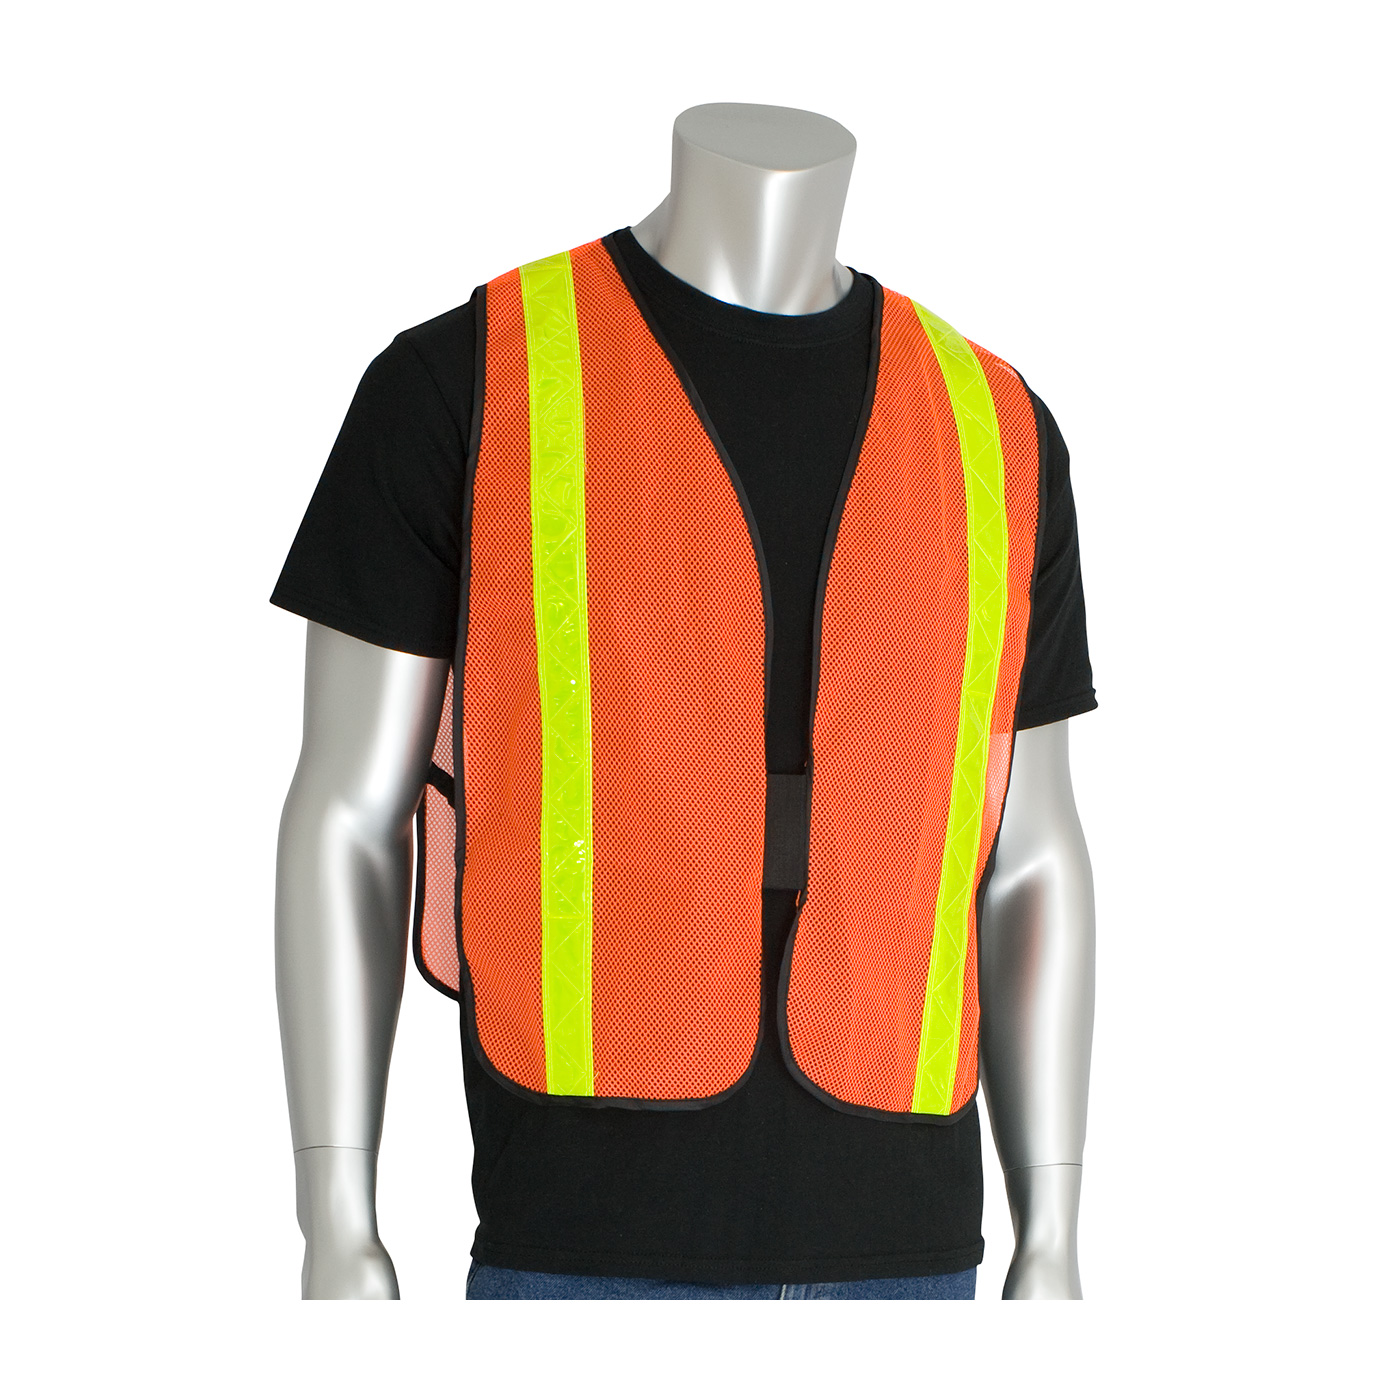 #300-EVOR-PLY PIP® Non-ANSI Blue Surveyor's Style Safety Vest with a Solid Front, Mesh Back and Prismatic Tape